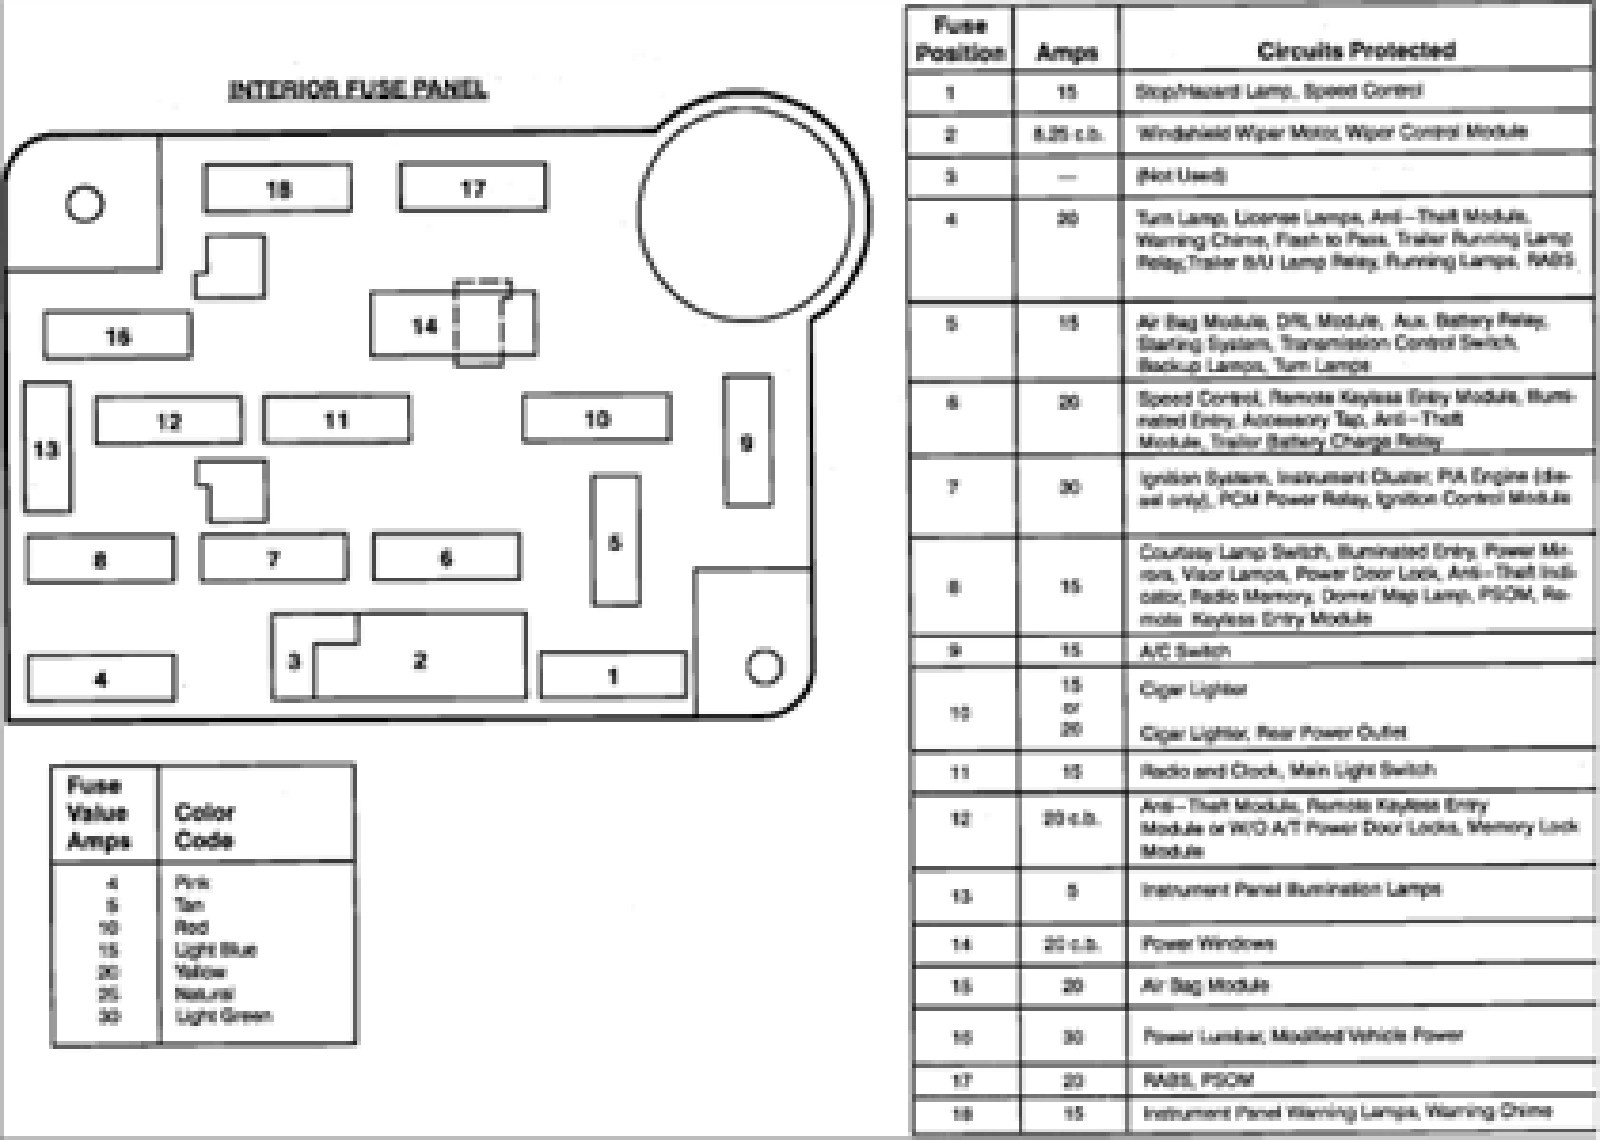 hight resolution of ford e 150 questions fuse diagram for a 1993 ford econoline van 1995 ford econoline van fuse box diagram 1995 ford econoline van fuse box